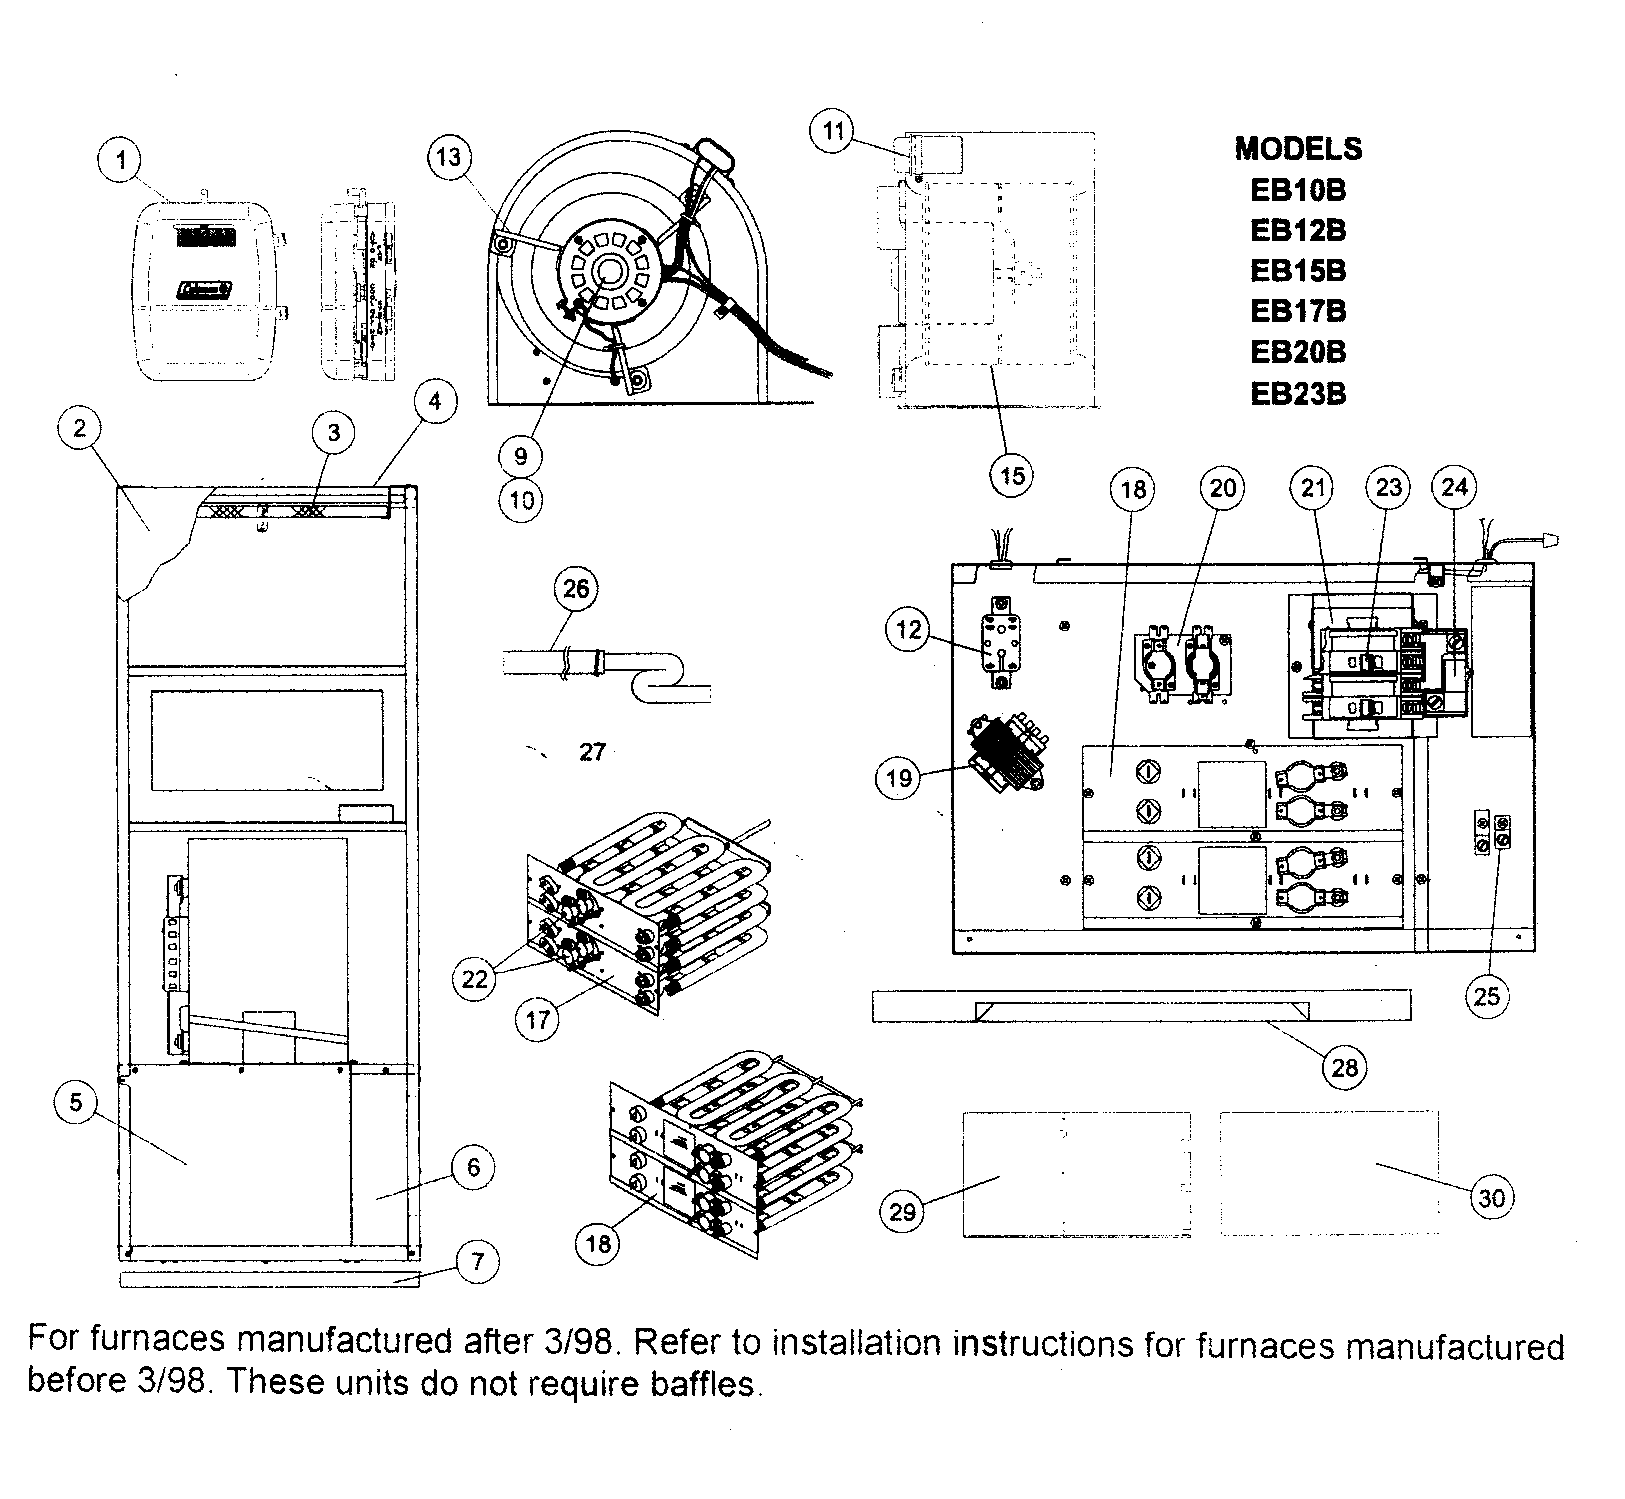 25 Elegant Coleman Evcon Electric Furnace Manual on intertherm furnace diagram, magnetek electric motor wiring diagram, coleman indoor furnace wiring diagrams, electric motor capacitor wiring diagram, coleman eb15b electric furnace diagram, electric range wiring diagram, voltage converter wiring diagram, coleman evcon furnace diagram, coleman furnace parts, magnetek power converter wiring diagram, coleman furnace model dgaa070bdta, coleman furnace sequencer wiring, ac motor wiring diagram, start stop switch wiring diagram, central heating wiring diagram, industrial motor control wiring diagram, ge electric motor wiring diagram, coleman electric heater parts, electric blower motor wiring diagram, coleman furnace limit switch location,